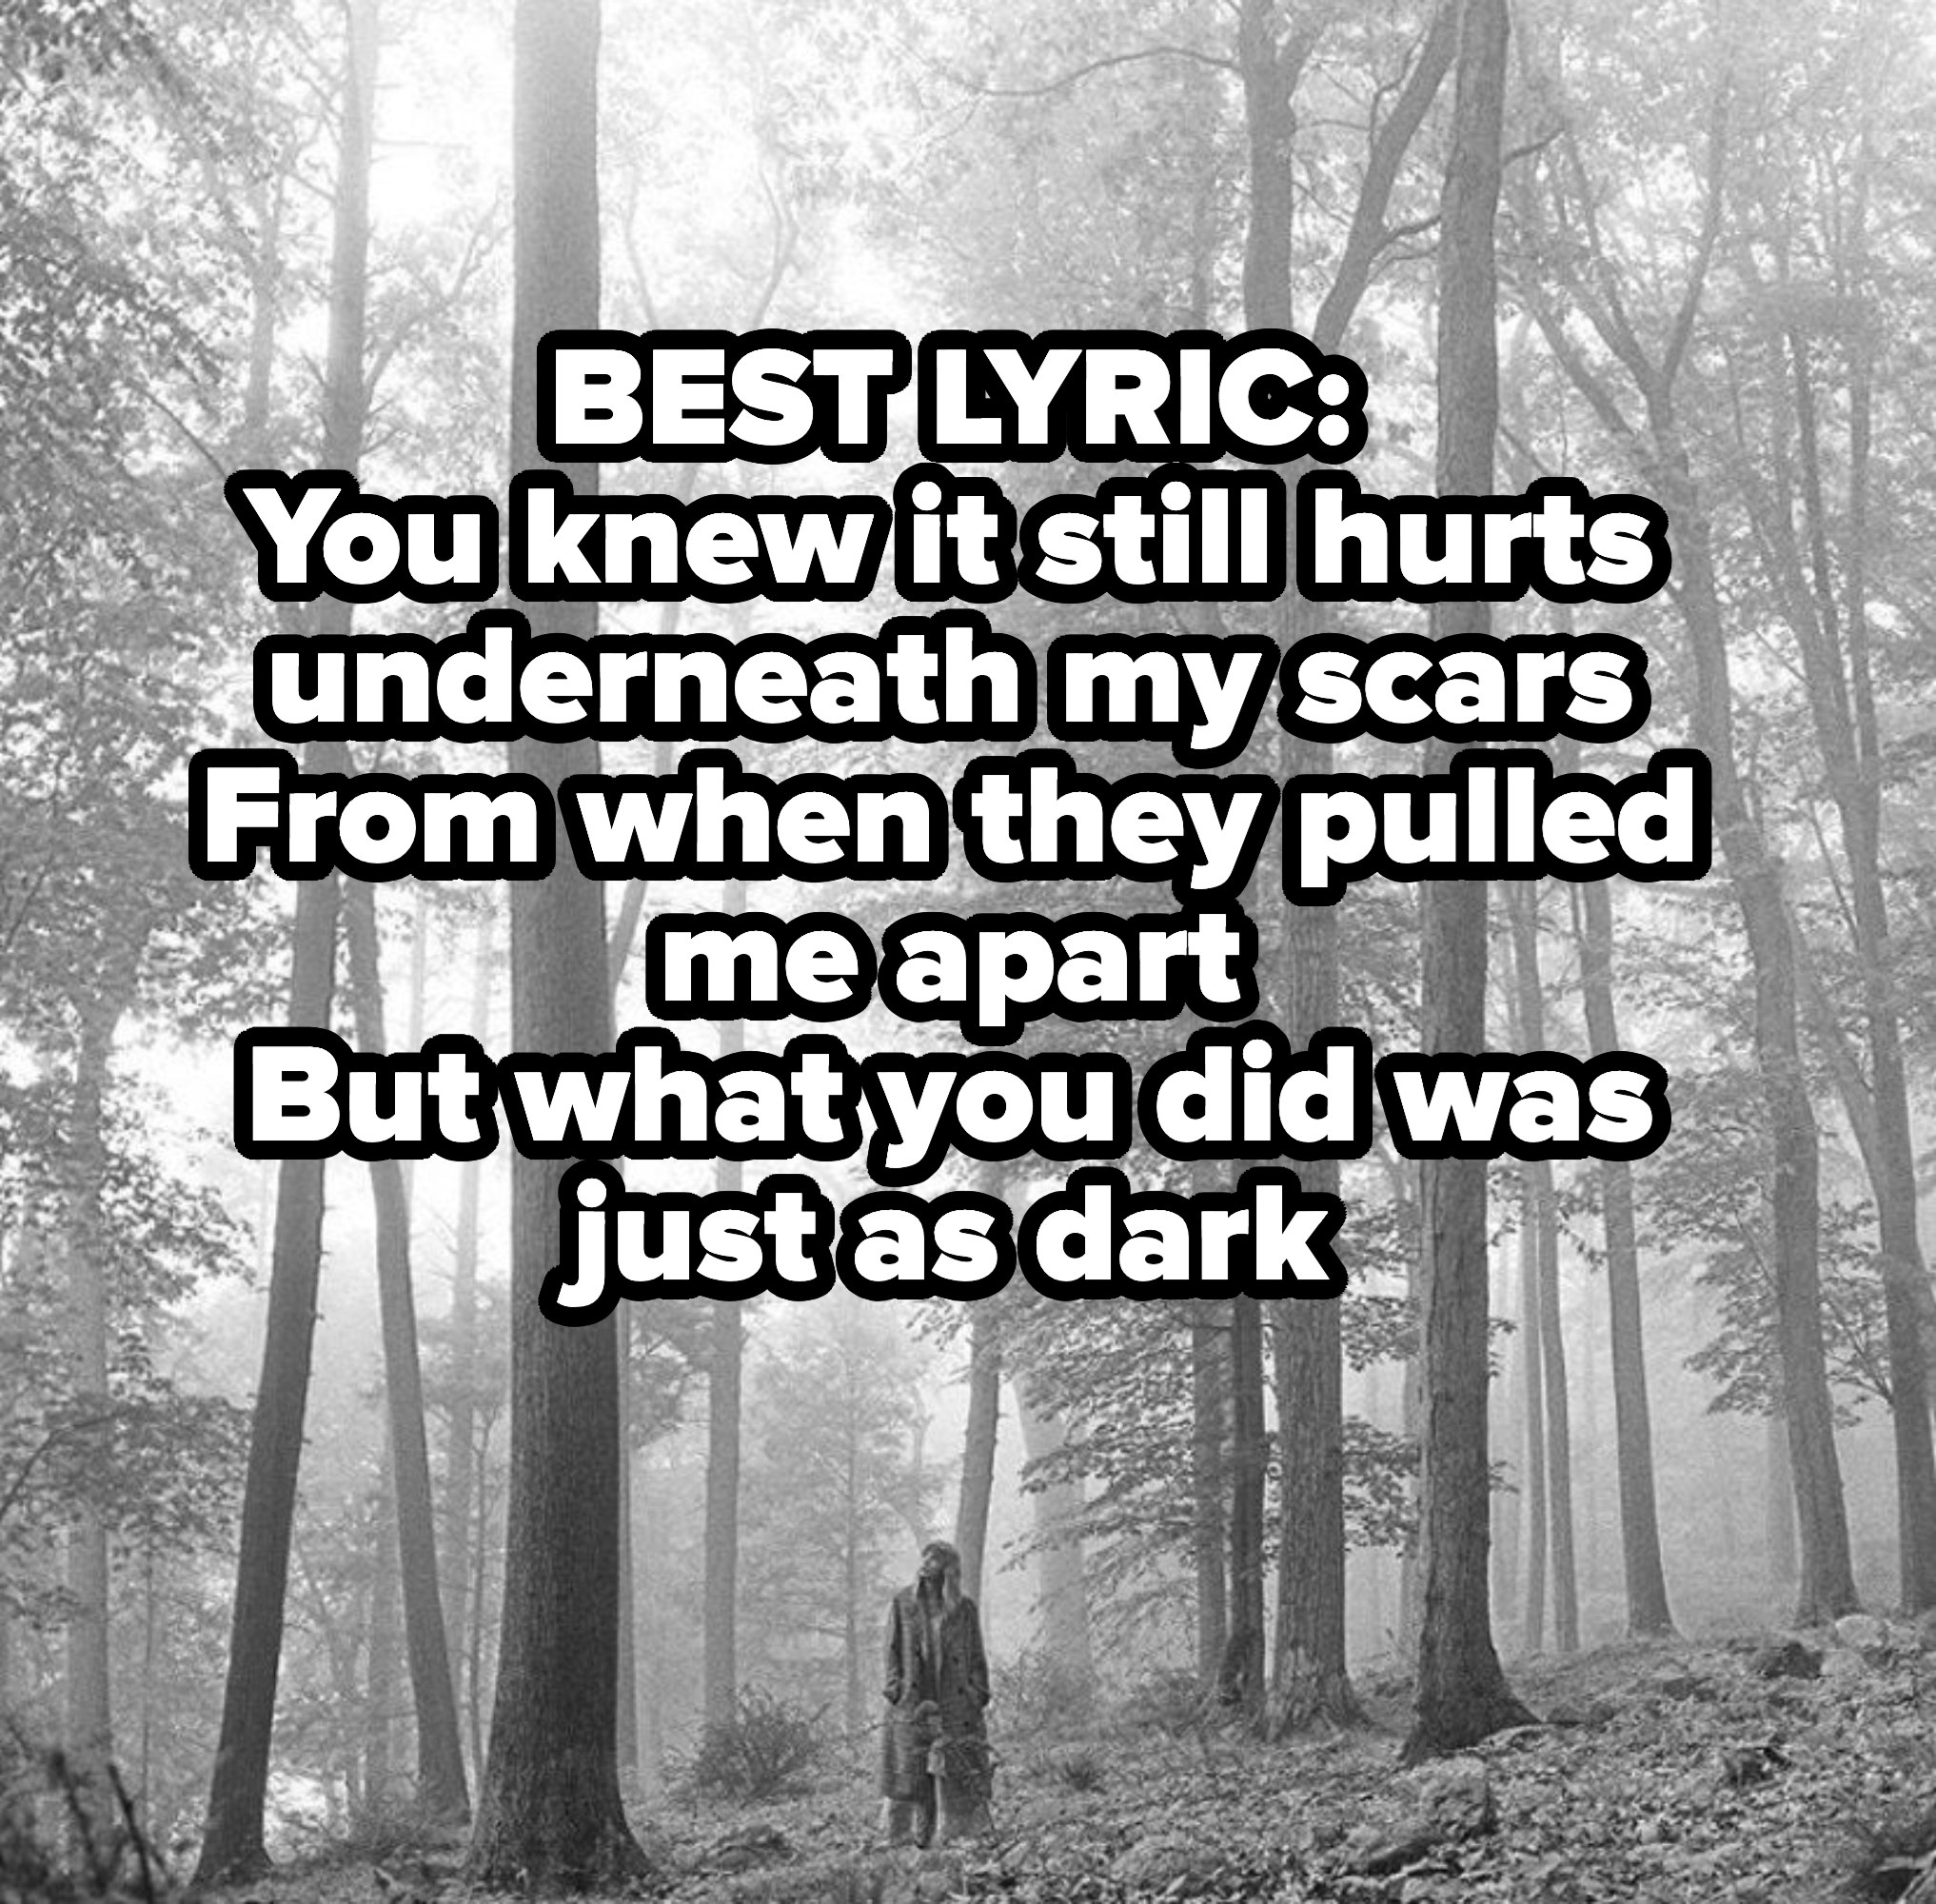 BEST LYRIC: You knew it still hurts underneath my scars From when they pulled me apart But what you did was just as dark